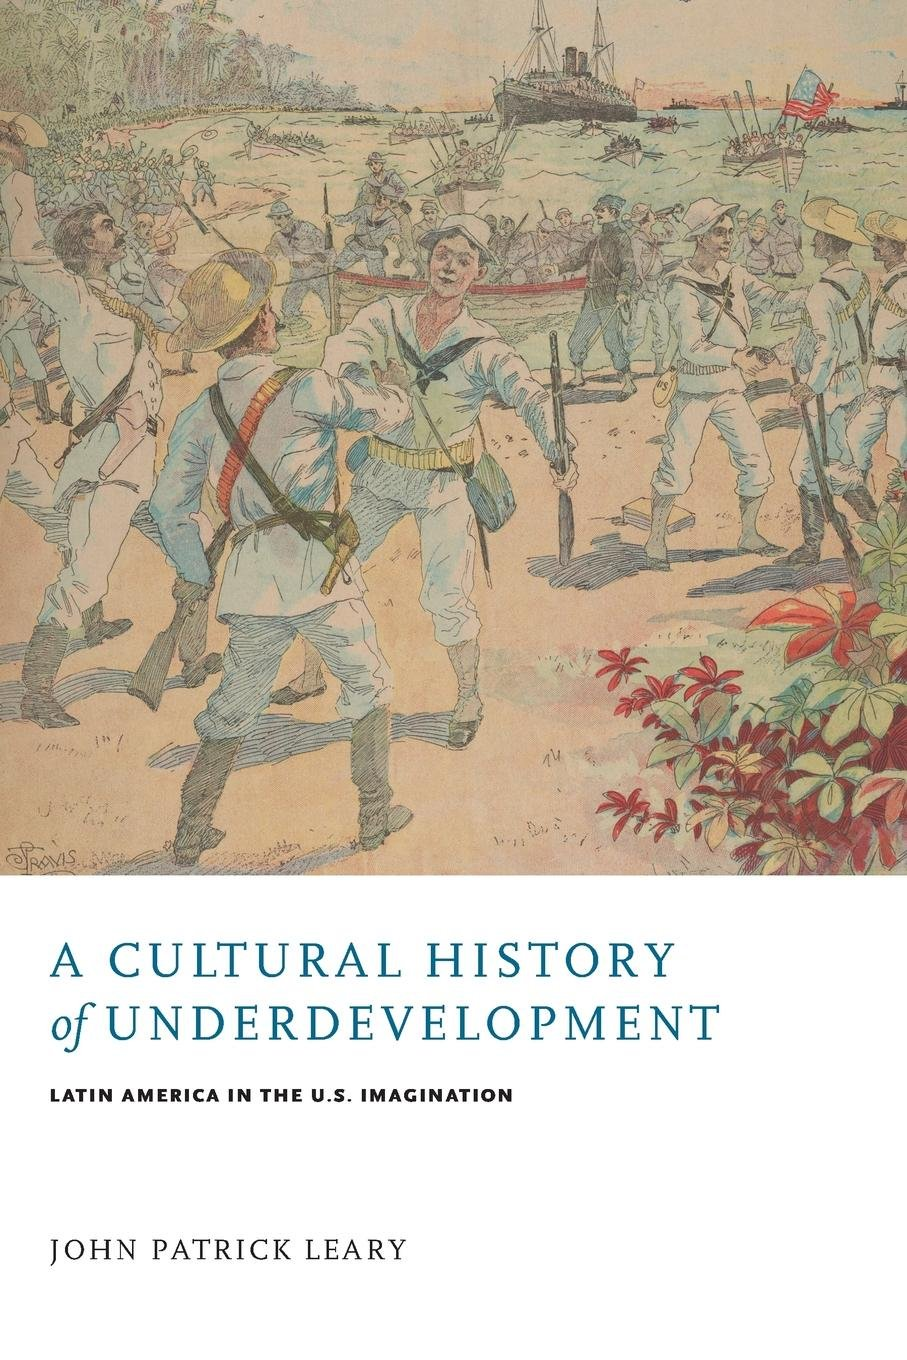 Download A Cultural History of Underdevelopment: Latin America in the U.S. Imagination (New World Studies) PDF